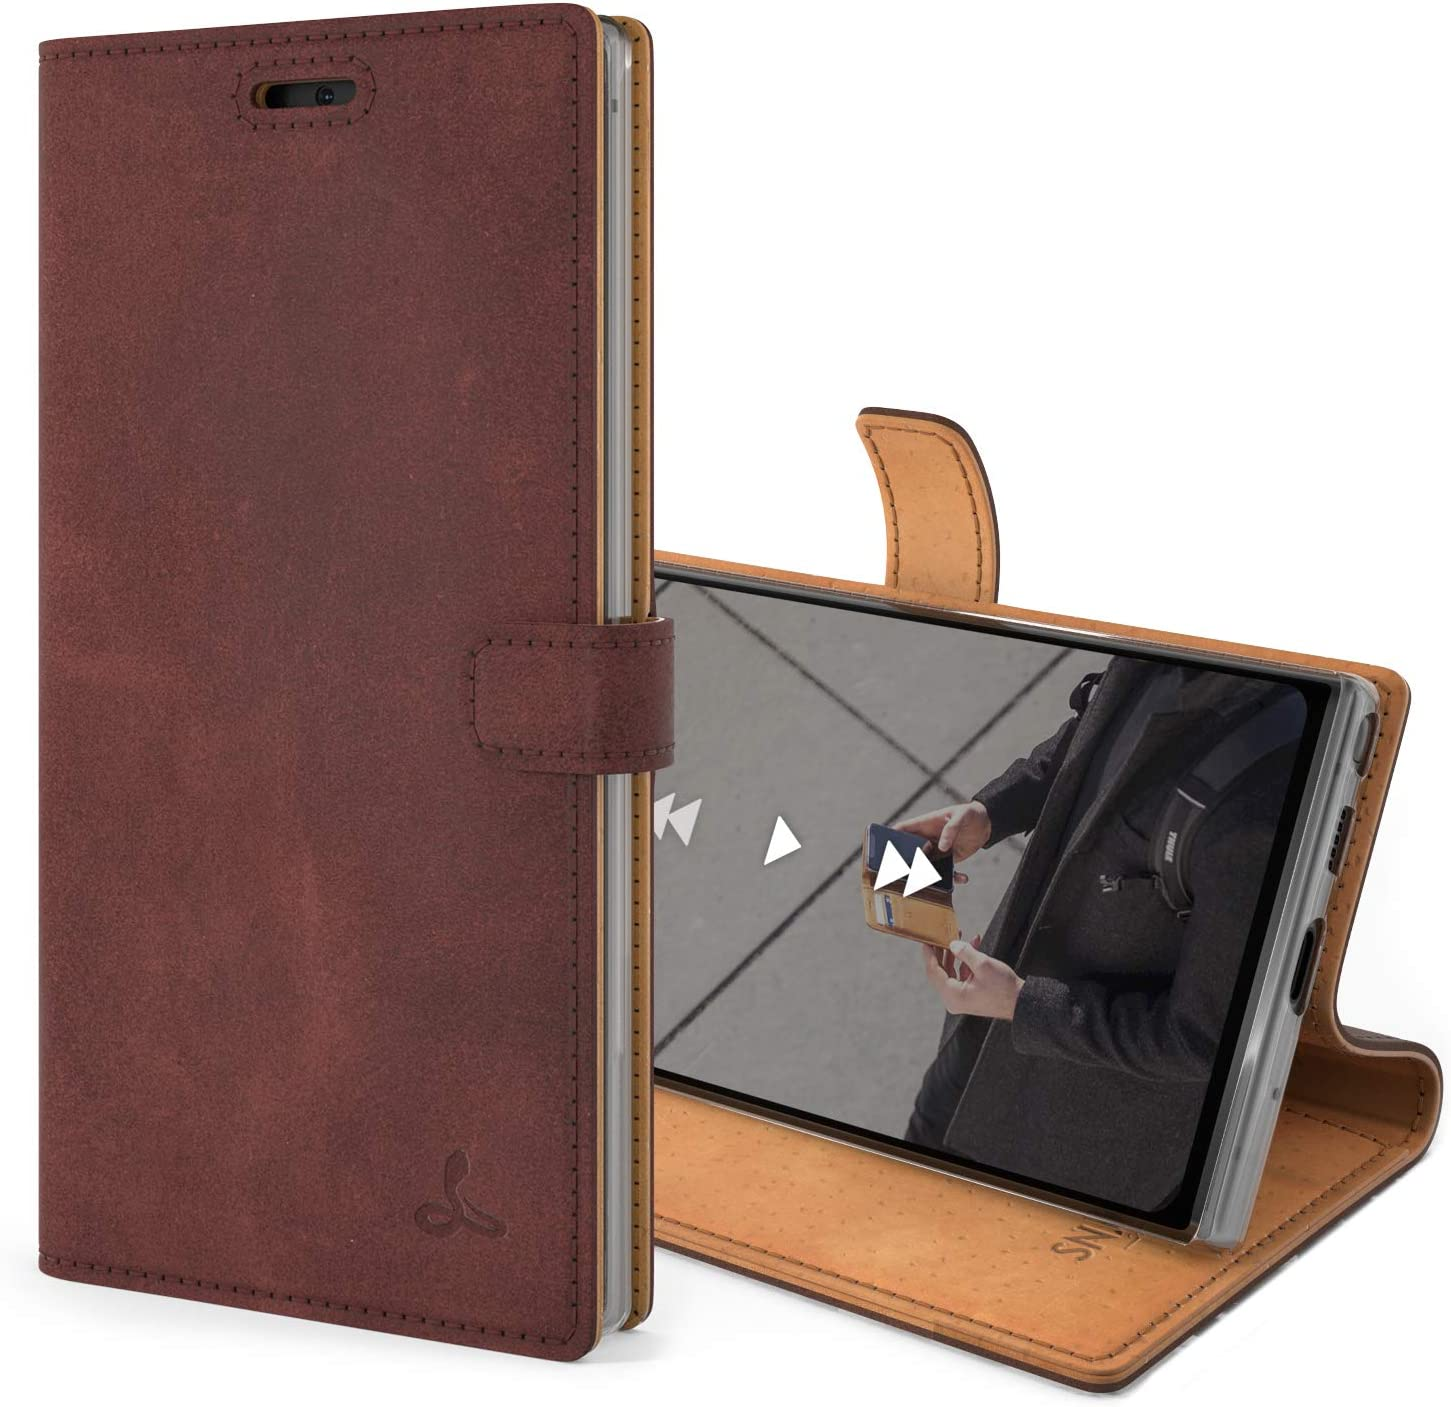 Snakehive Vintage Wallet for Samsung Galaxy Note 10    Real Leather Wallet Phone Case    Genuine Leather with Viewing Stand & 3 Card Holder    Flip Folio Cover with Card Slot (Plum)